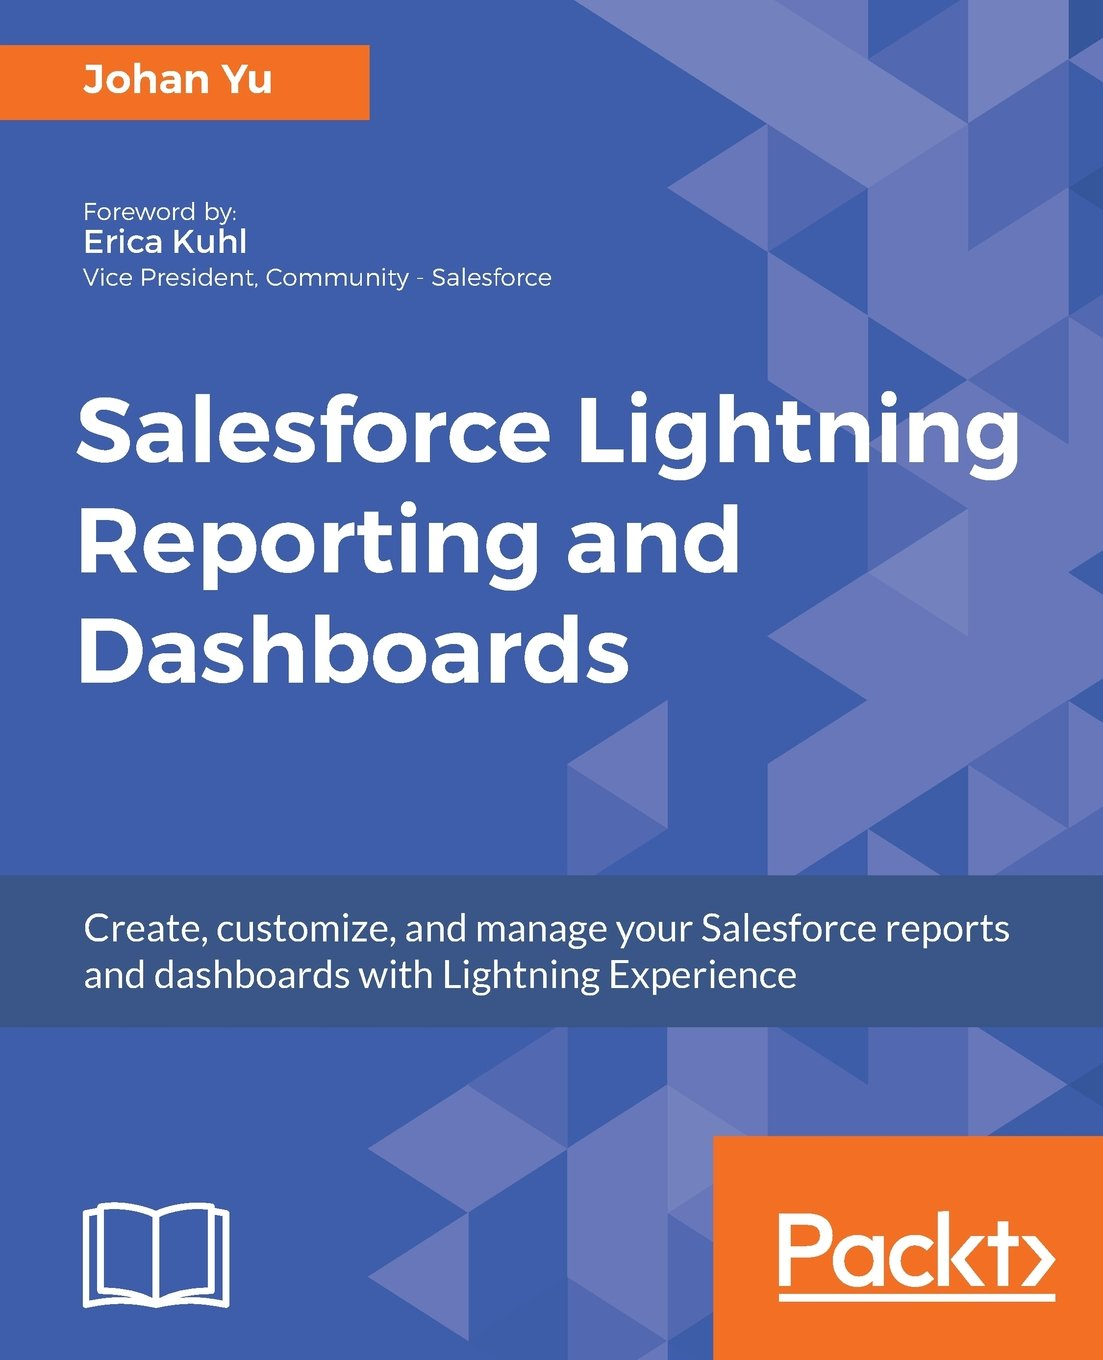 2nd Book - Salesforce Lightning Reporting & Dashboards